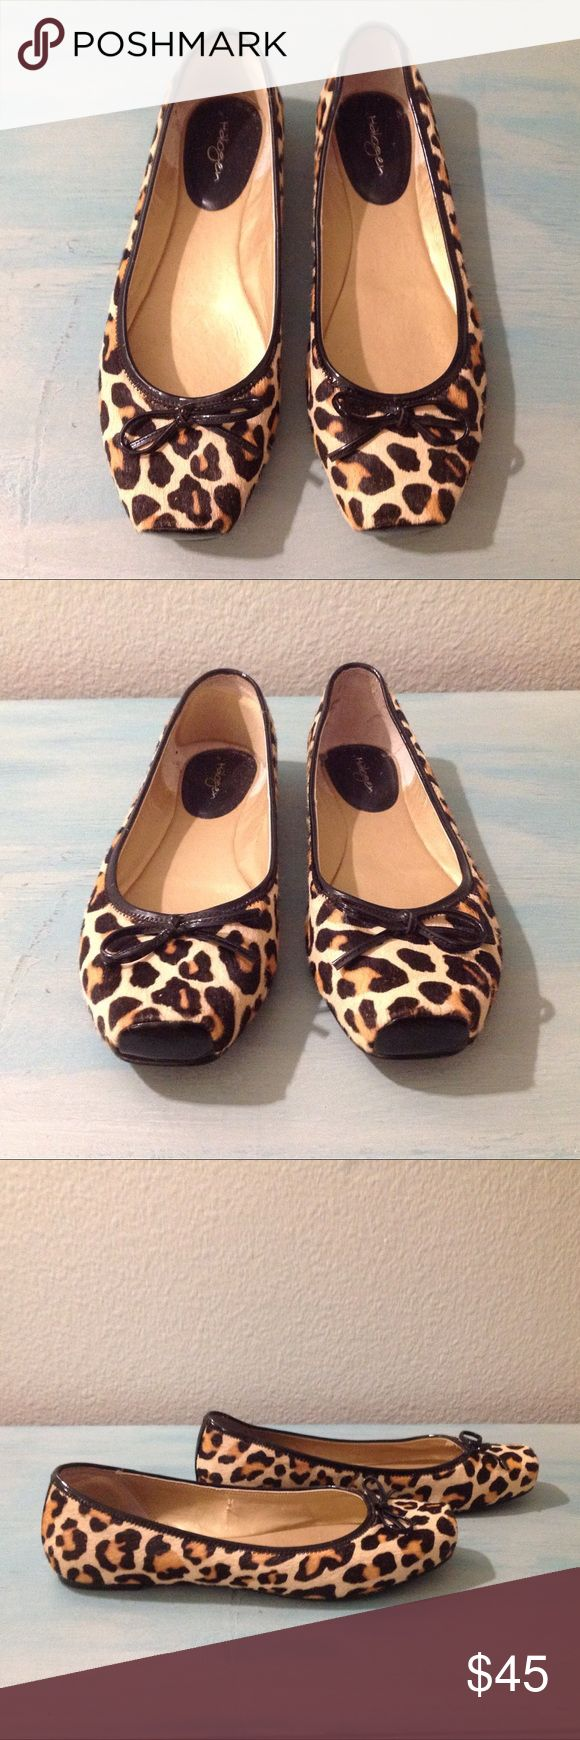 Halogen Square Toe Leopard Calf Hair Ballet Flat Adorable and comfortable Leopard Calf hair ballet flats with feminine bow detailing. Genuine leather upper with man made sole. Halogen Shoes Flats & Loafers